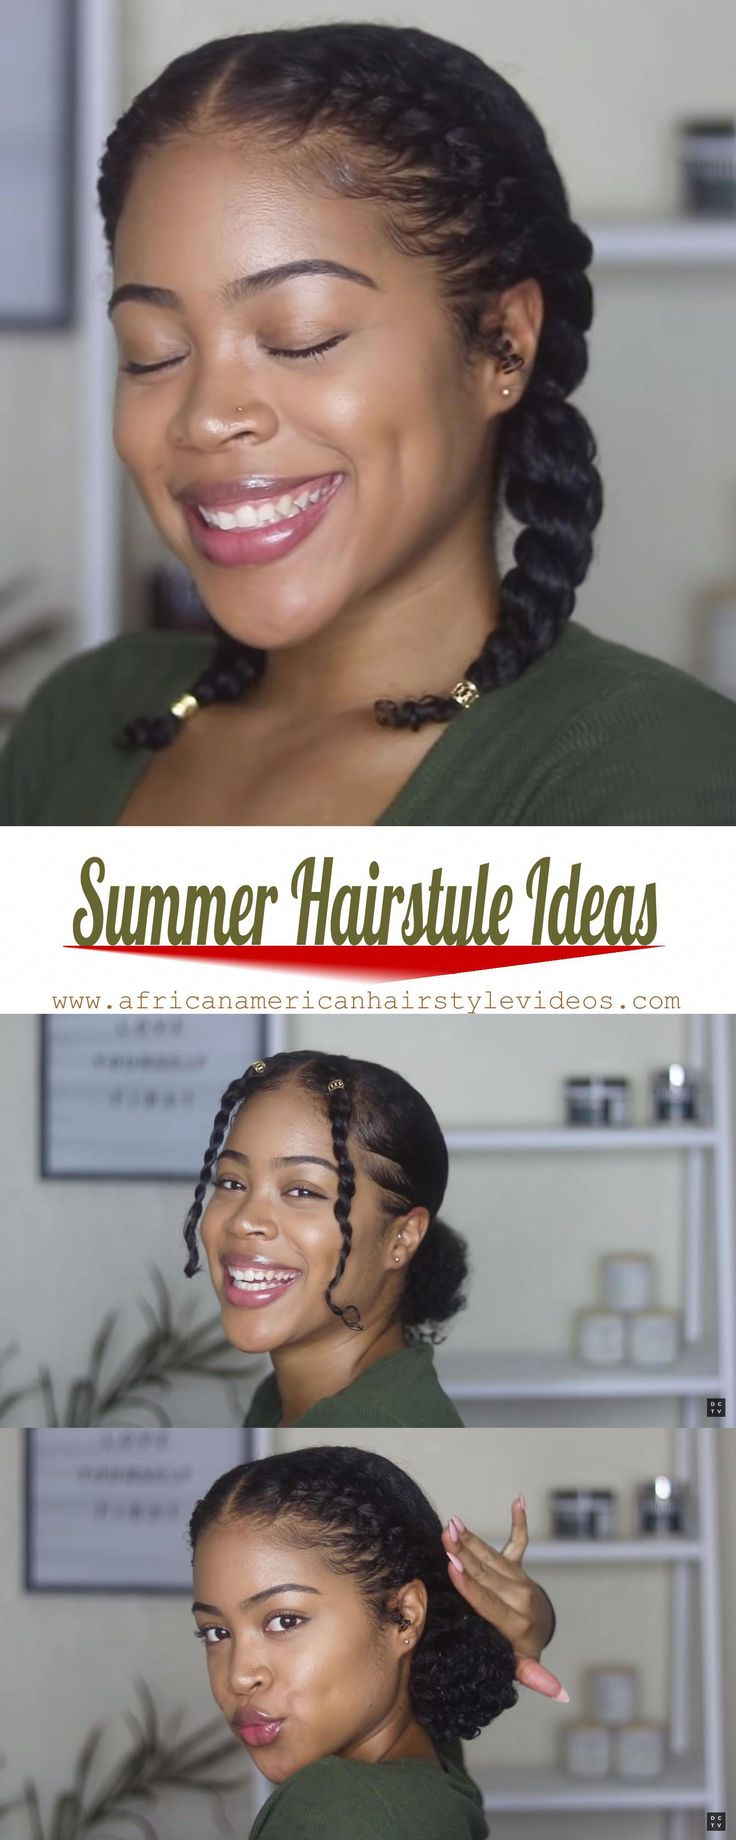 6 easy, elegant, and perfect summer natural hair ideas  #naturalhairstylesideas #hairstyles #naturalhair #naturalhaircare